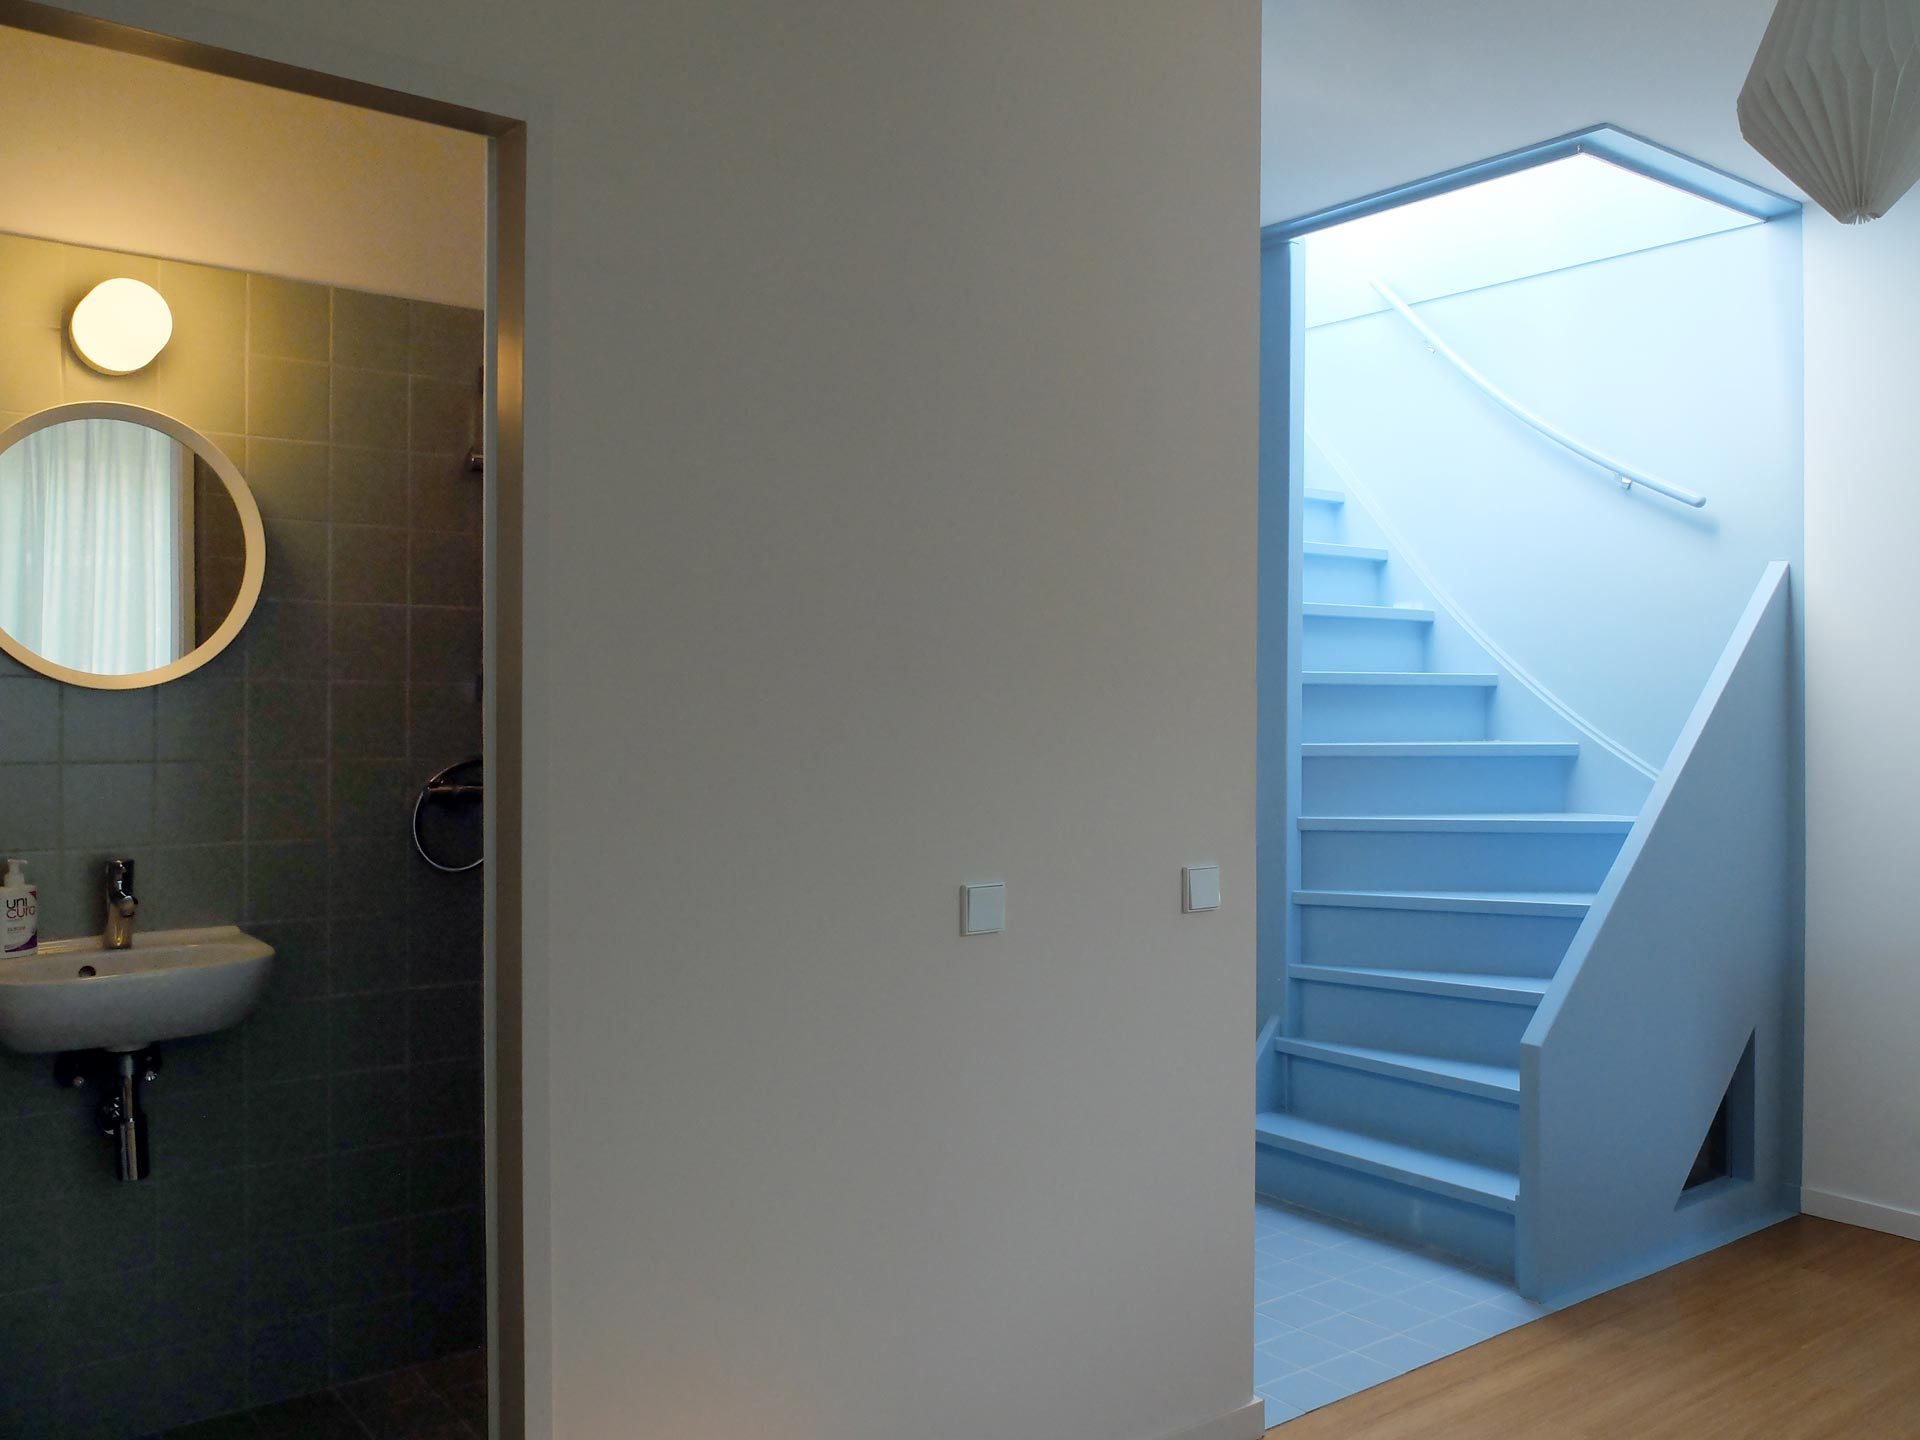 Lagado-architects-workhome-noordereiland-interior-pantry-blue-stair-bathroom-green-tiles